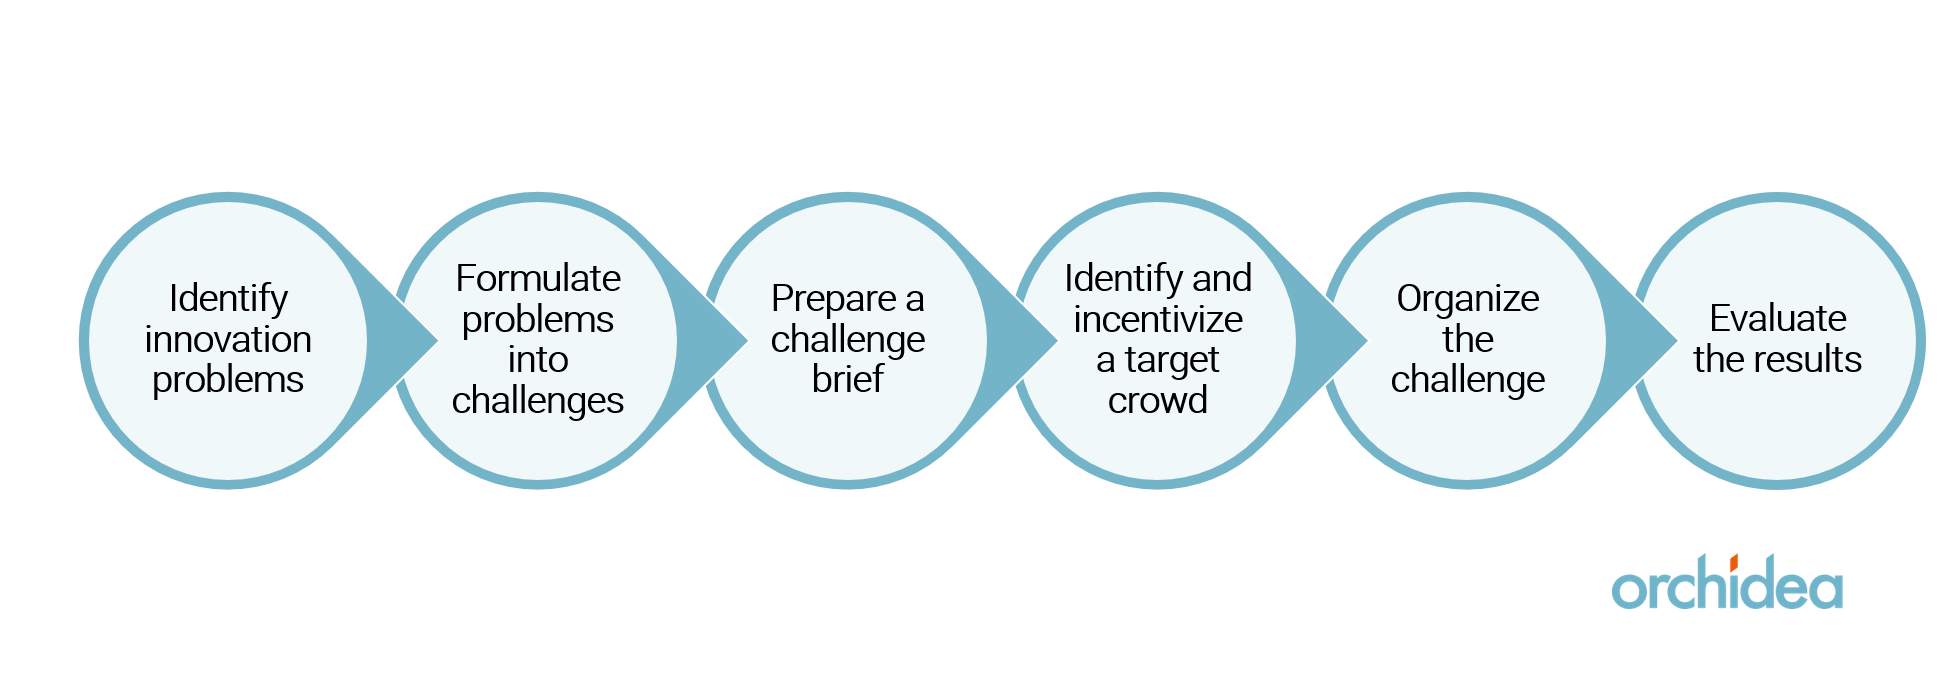 Process for organizing innovation challenges